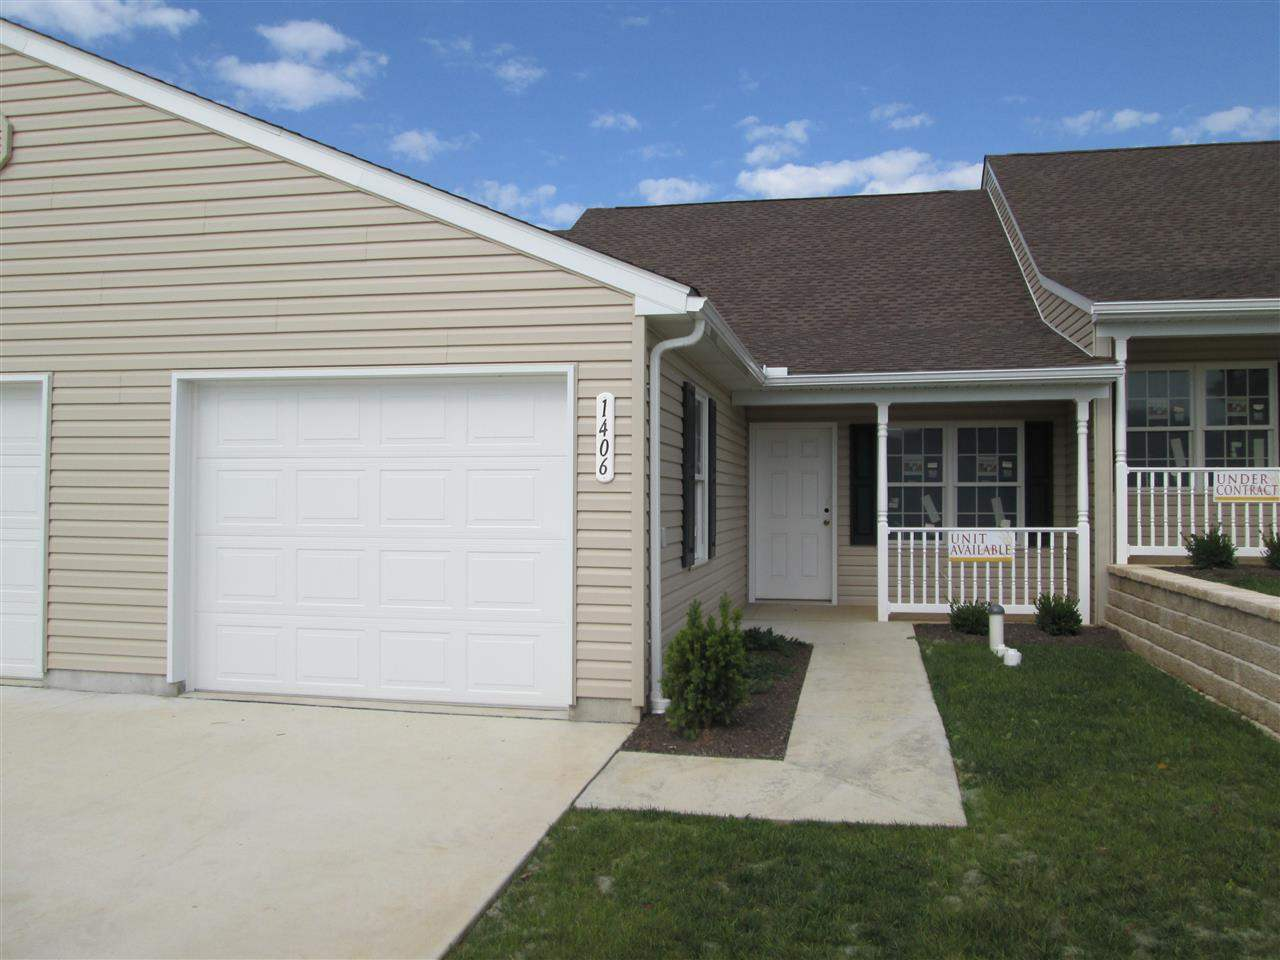 1406 Chami Dr, Spring Grove, PA 17362